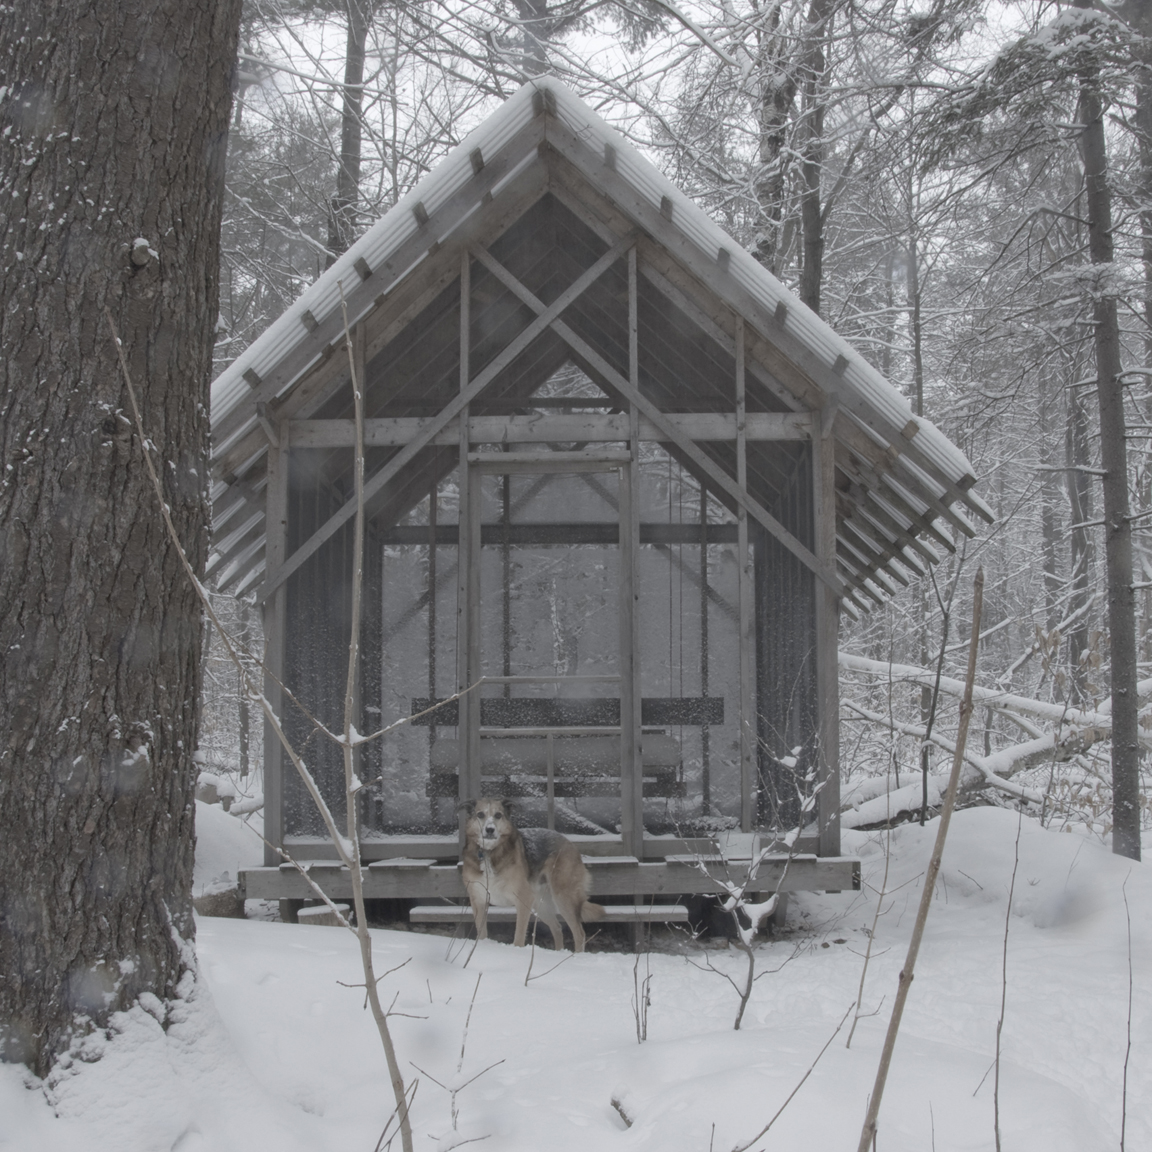 fernhouse in winter a.jpg